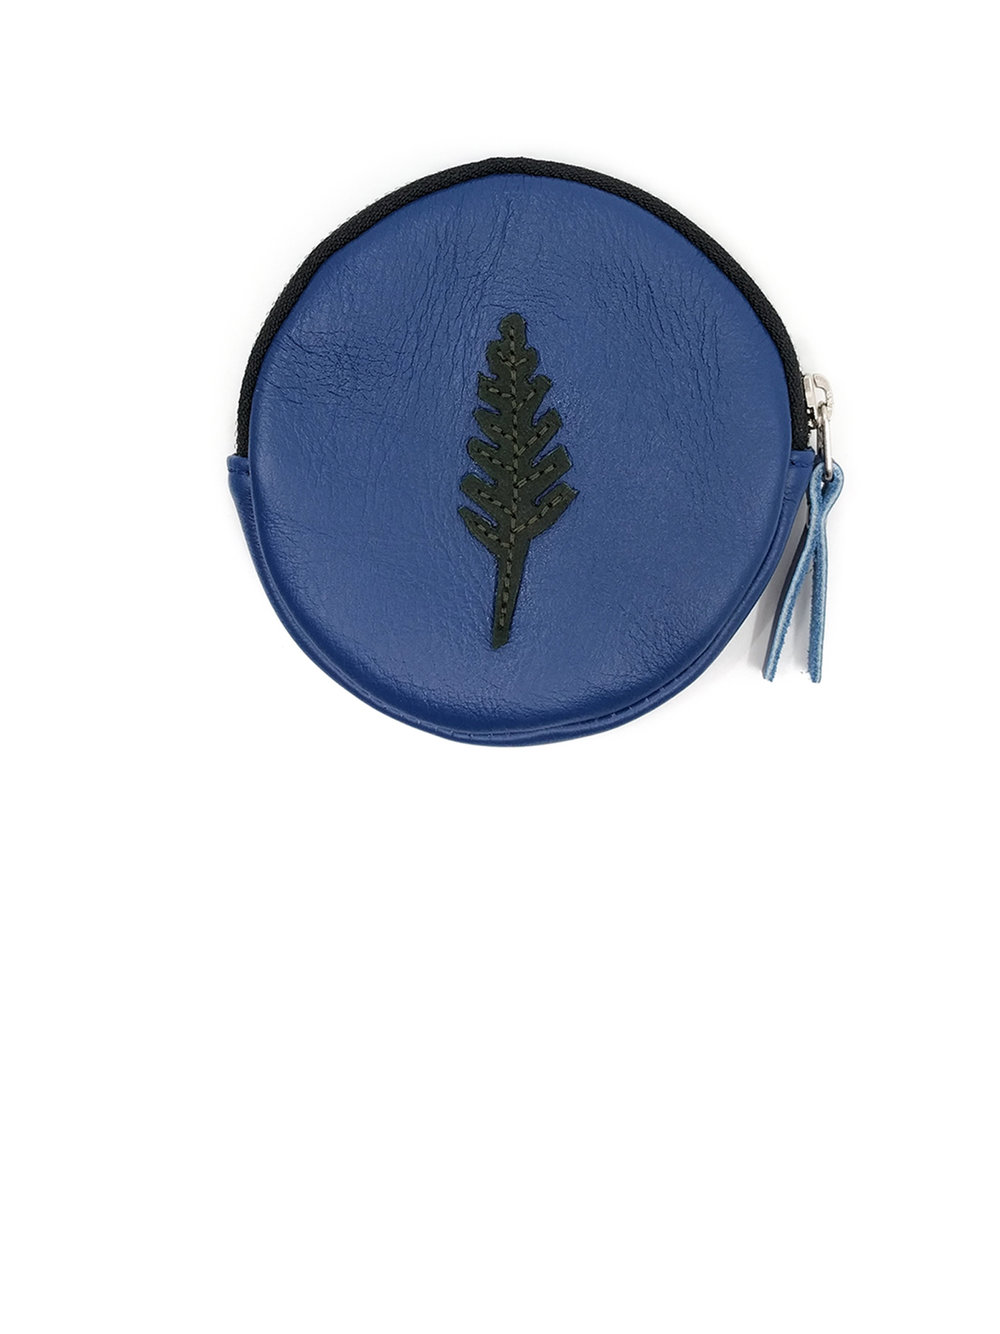 Round coin purse - more colors available30.00$ - 36.00$